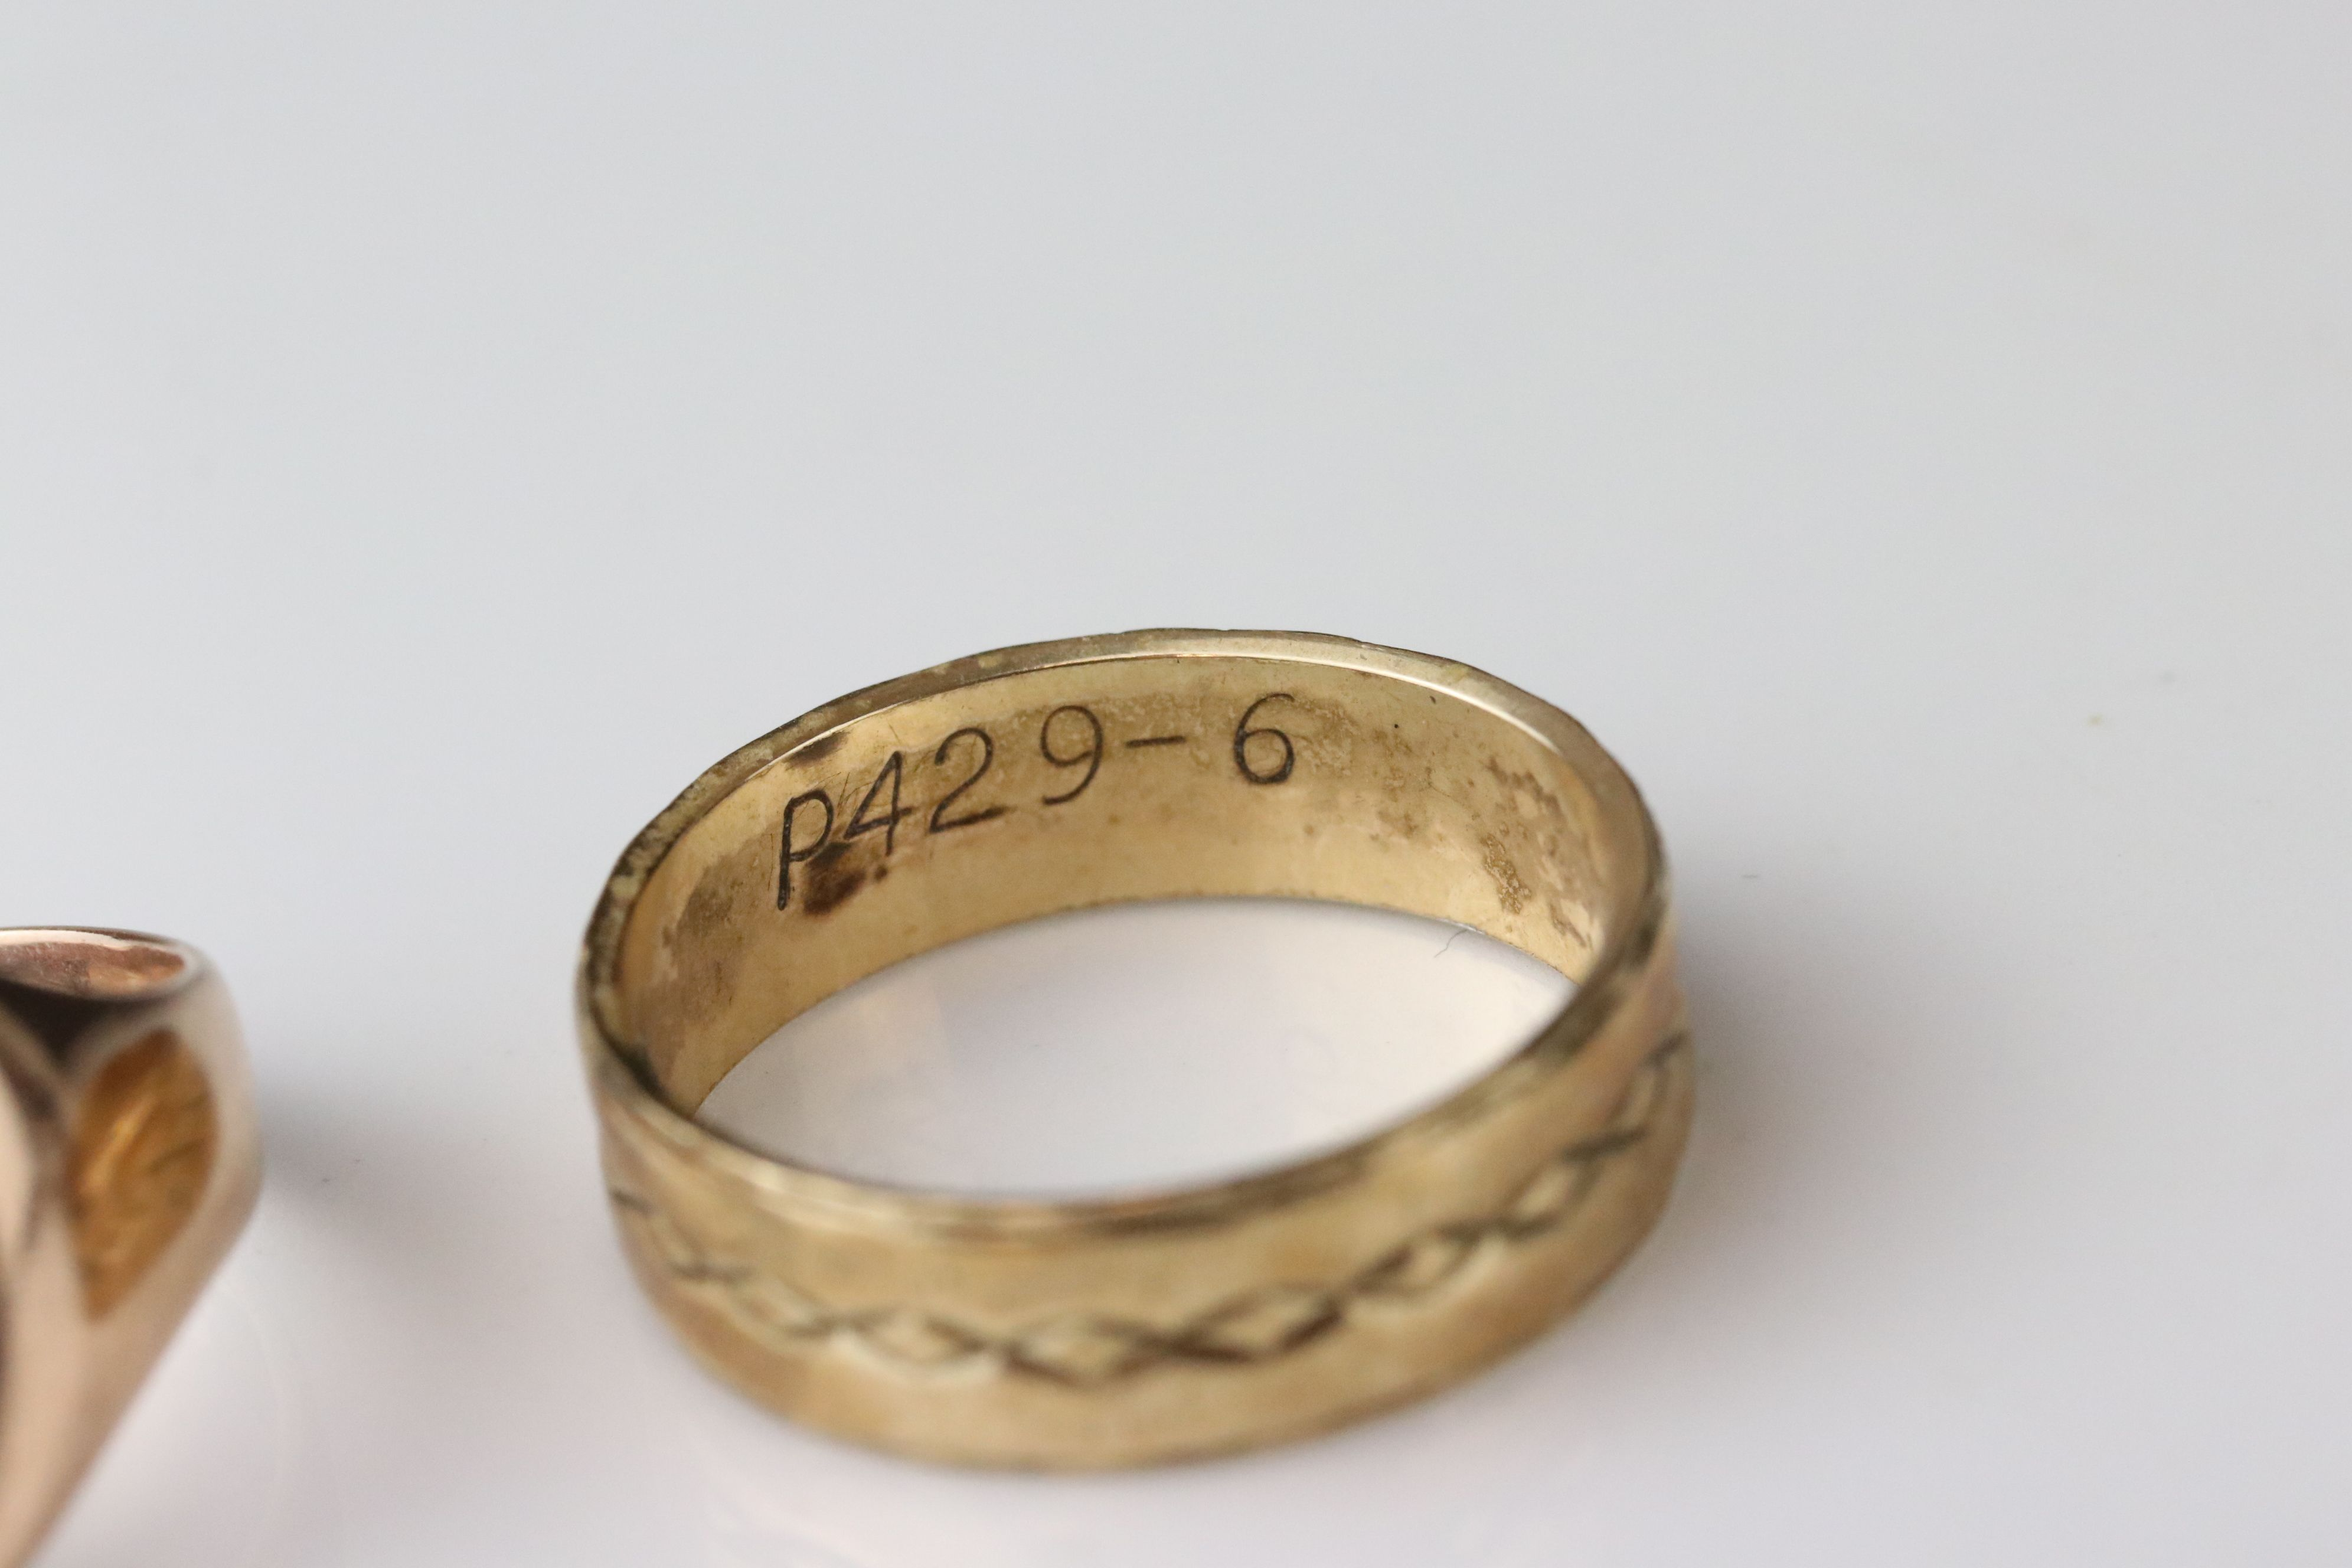 Rose gold signet ring, assessed as 9ct gold, oval panel (possibly with extremely rubbed monogram), - Image 2 of 4